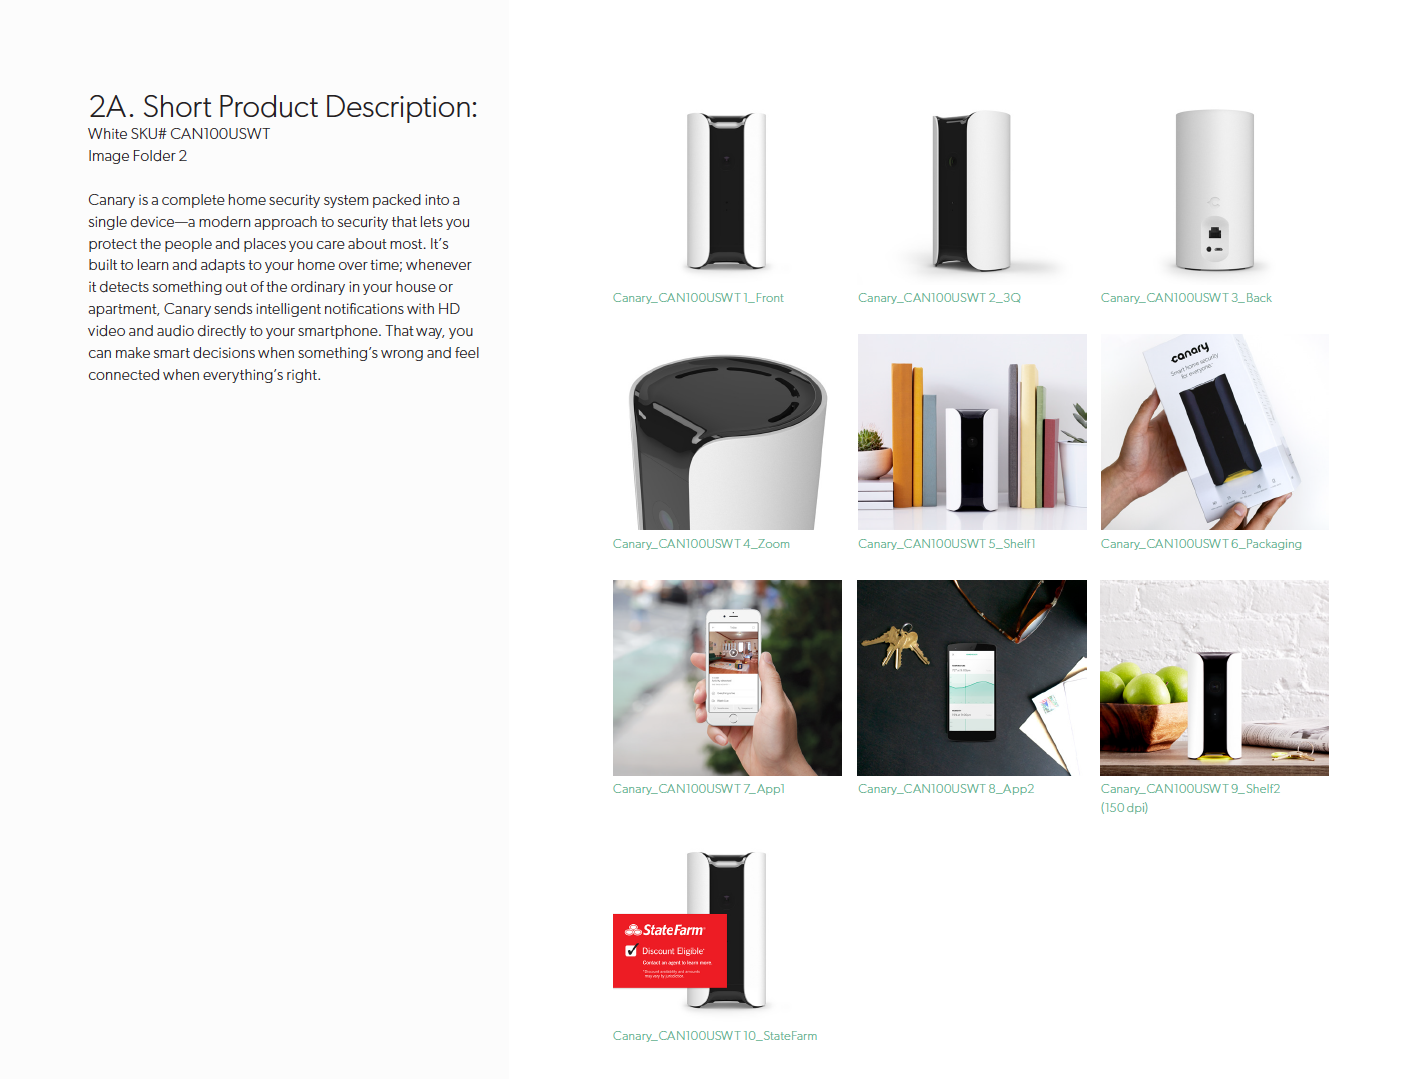 Concepting and writing for Retail Kit showcasing brand-appropriate description and imagery for digital and in-store marketing.